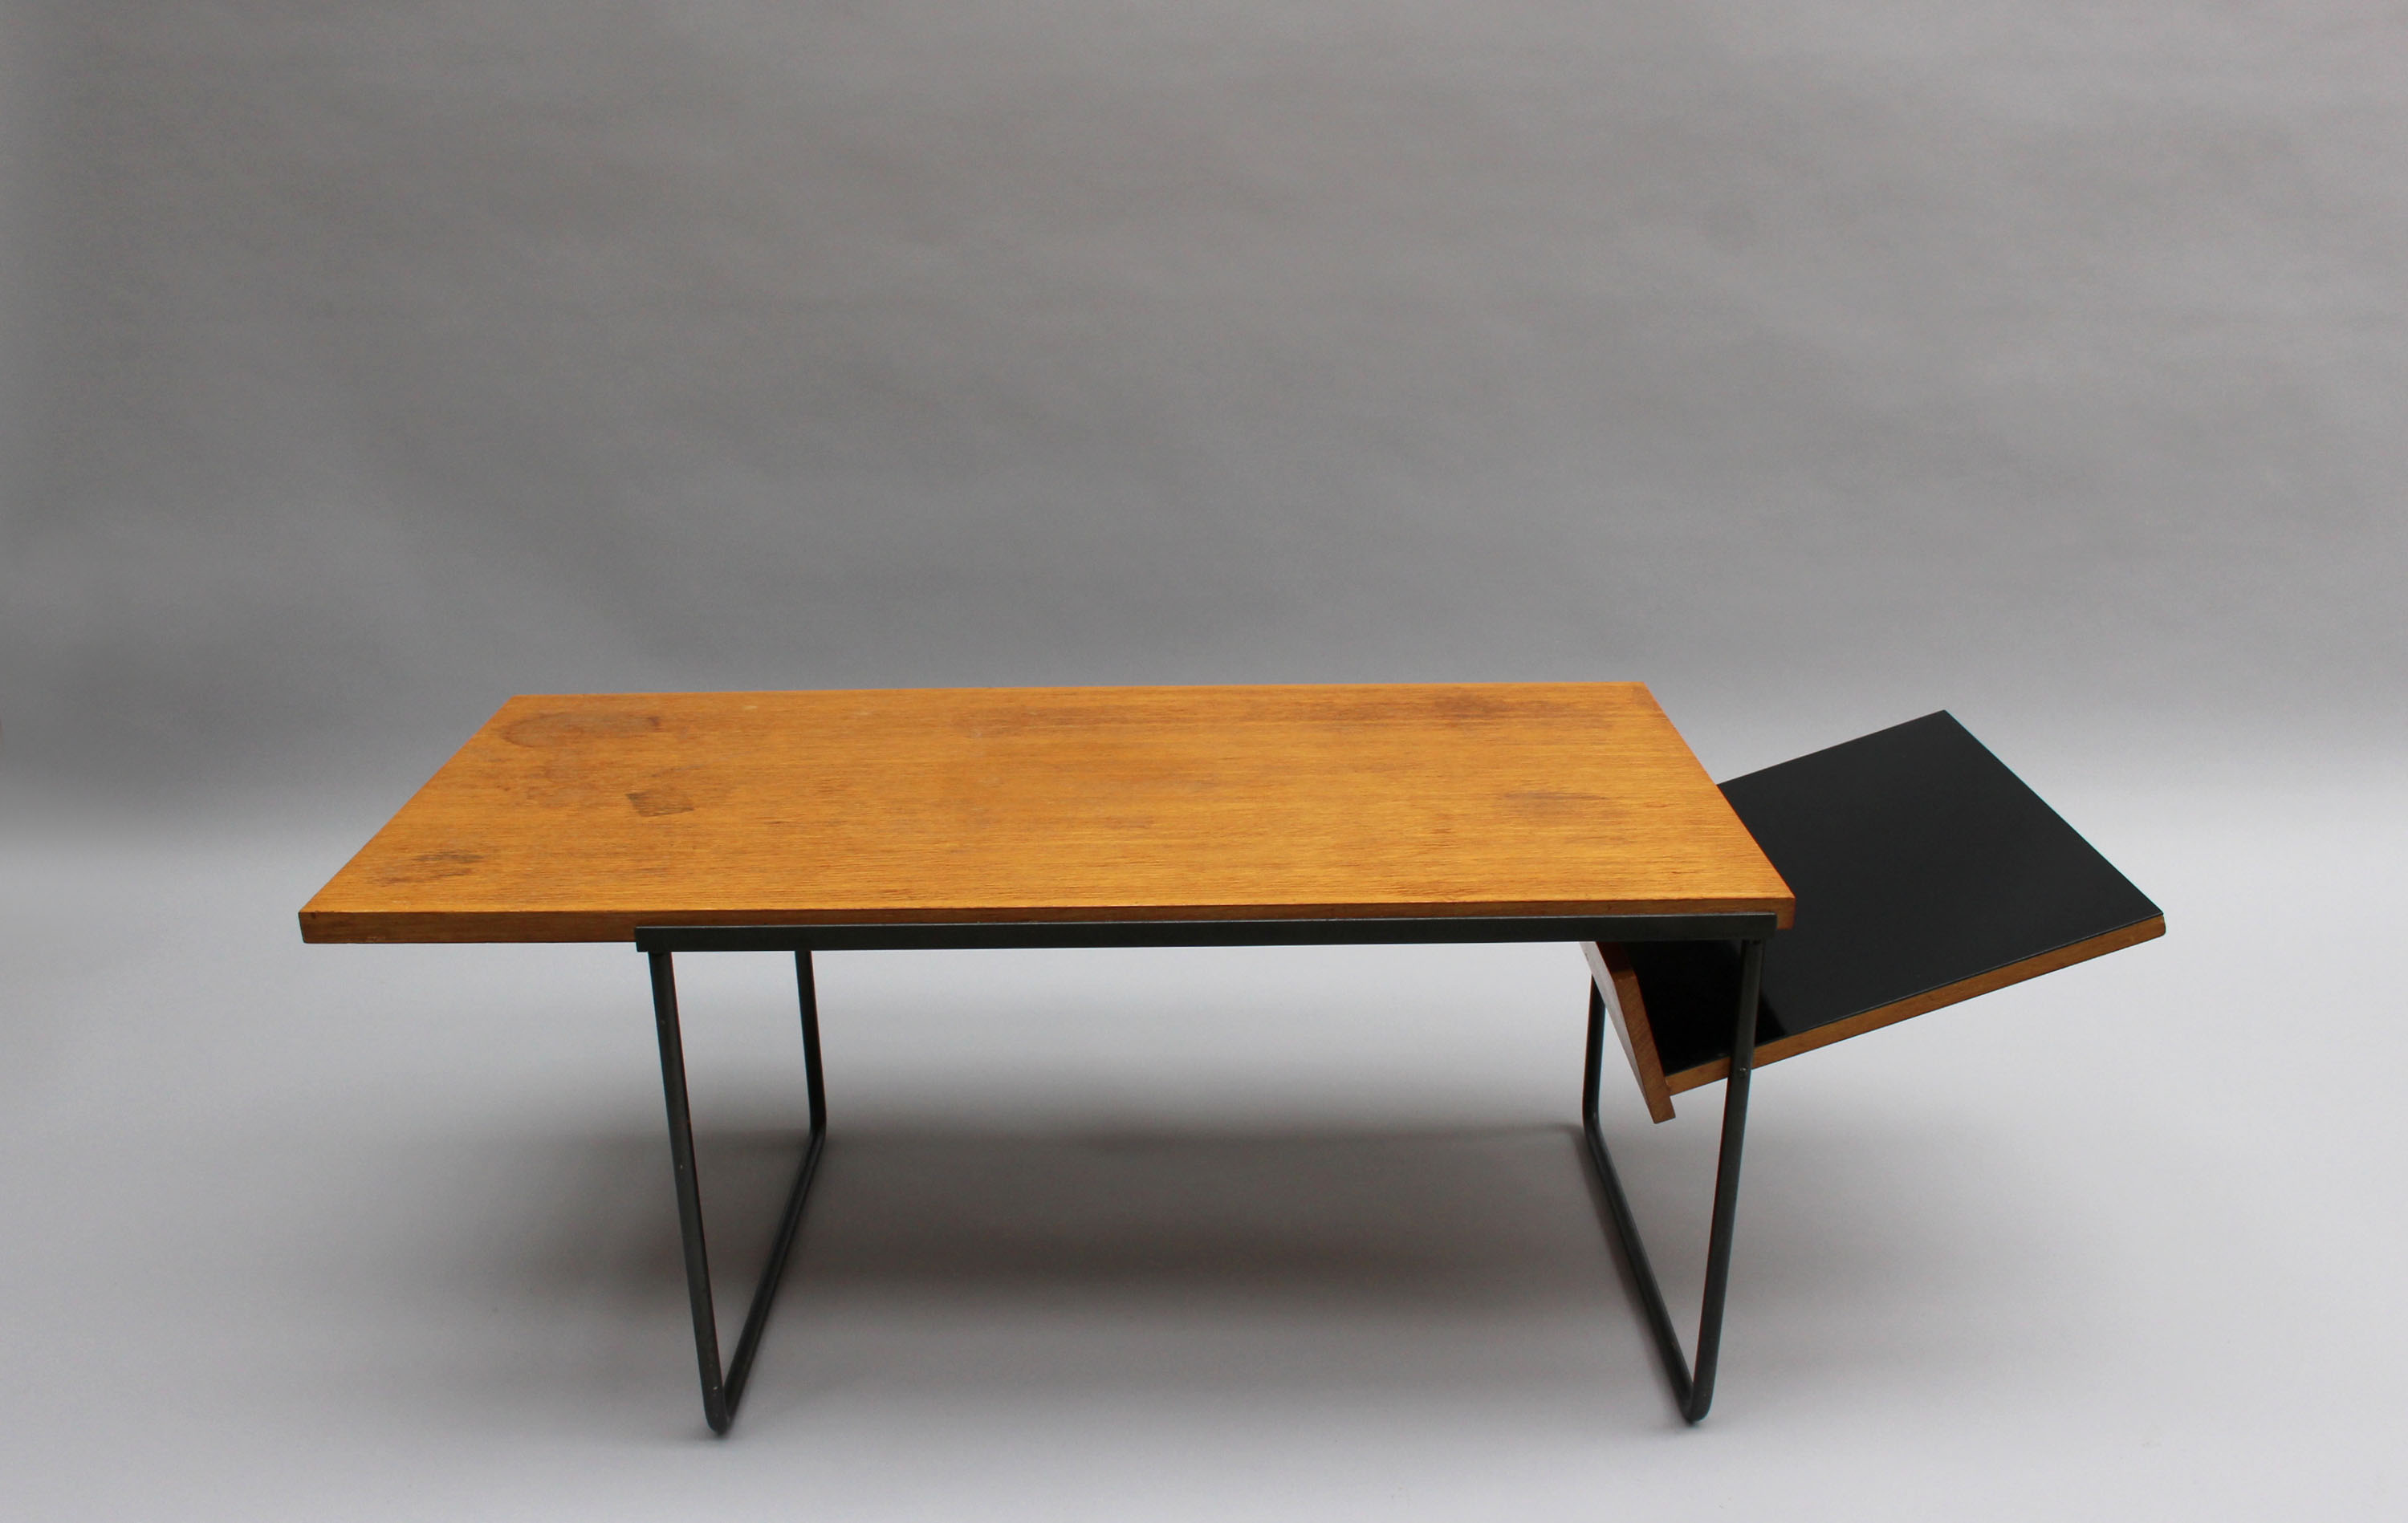 Table Basse En Metal French Midcentury Oak And Laminate Coffee Magazine Table With A Metal Base